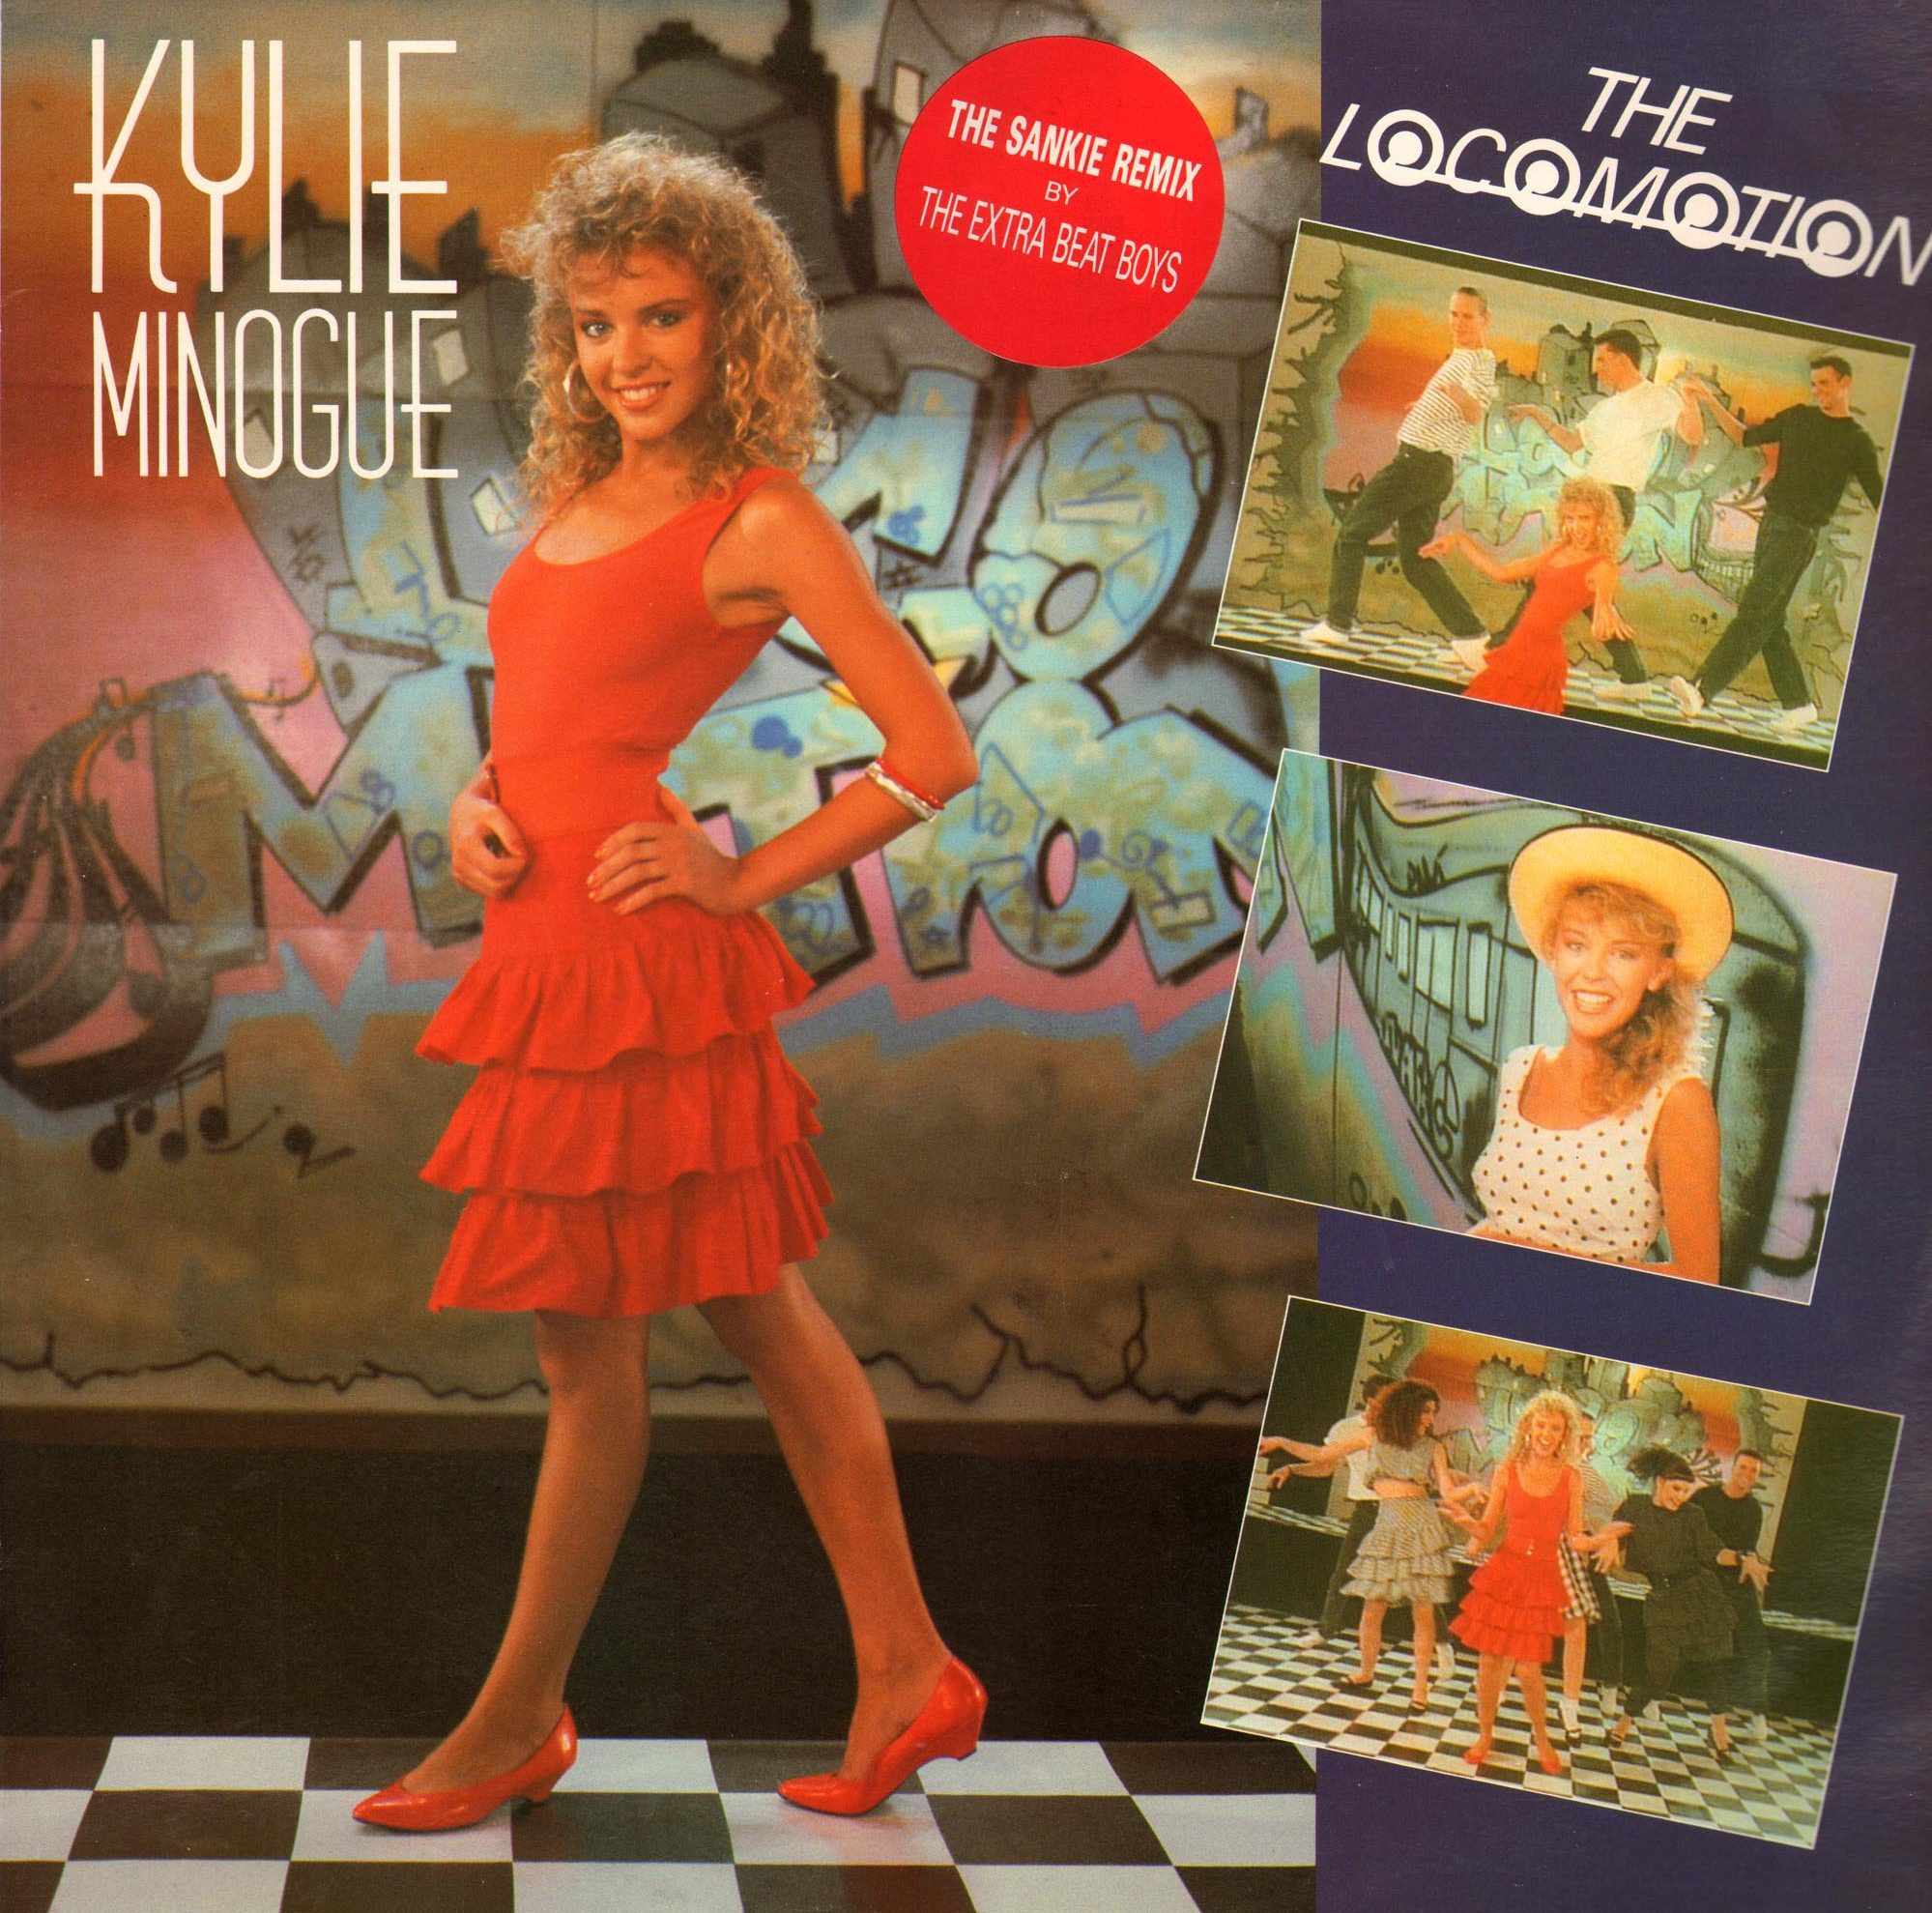 1 40 e1616508442100 10 Things You Probably Didn't Know About Kylie Minogue